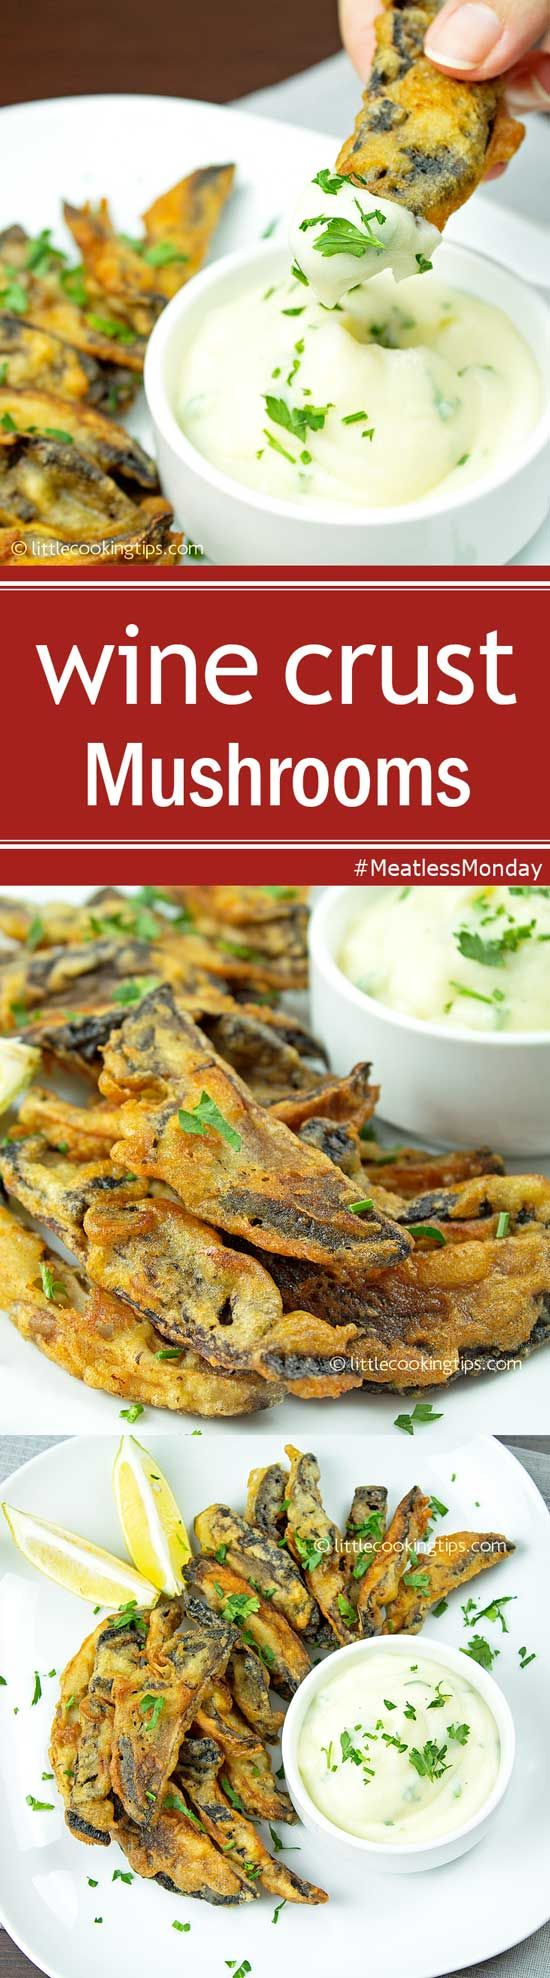 Fried Mushrooms in wine crust with garlicky mashed potatoes